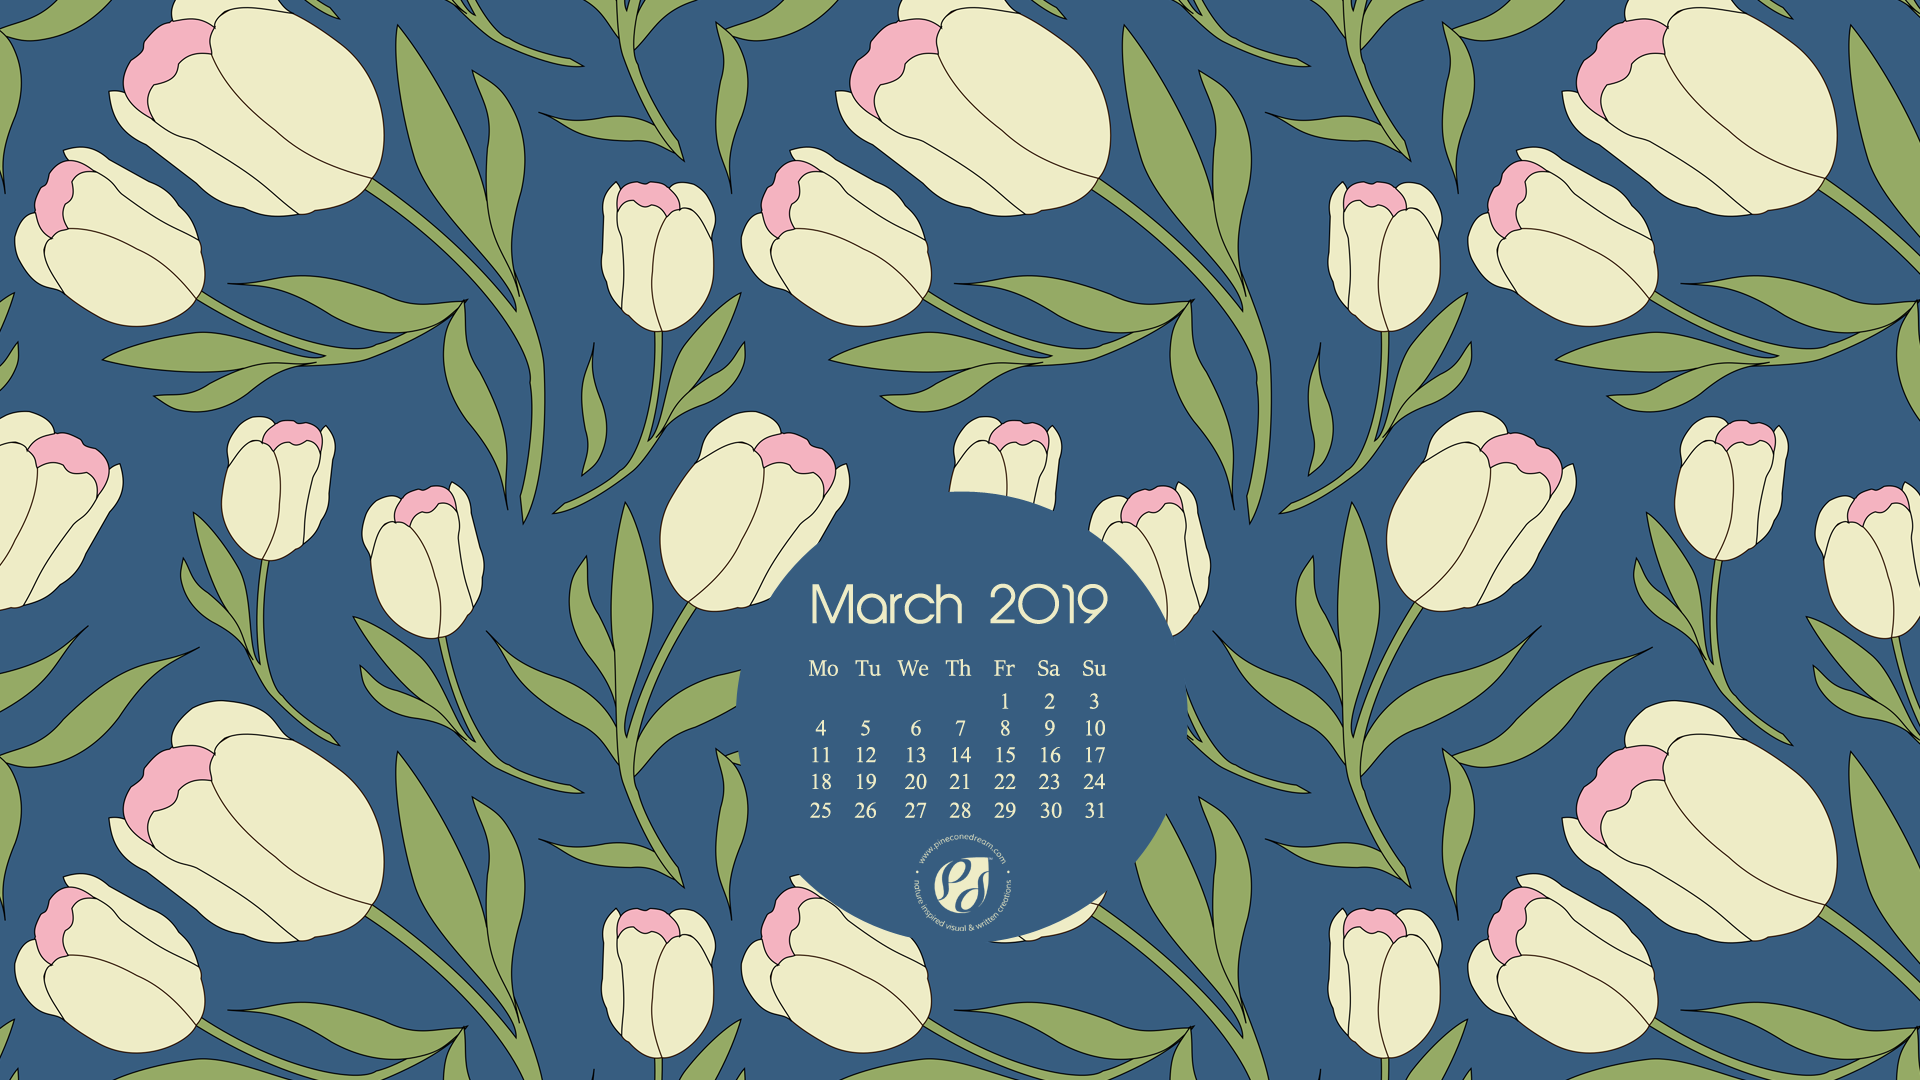 March 2019 Free Calendar Wallpapers Printable Planner